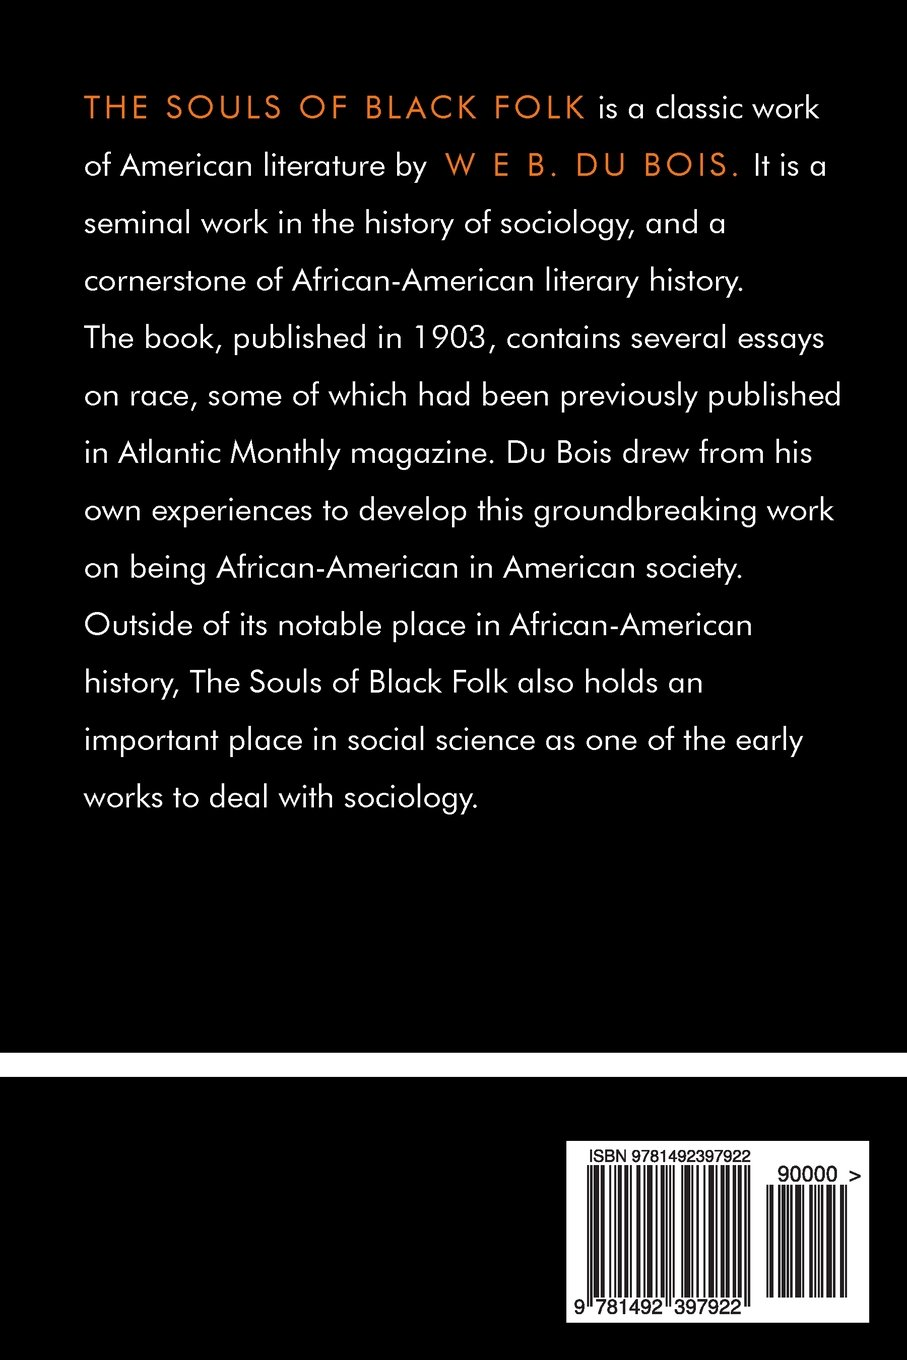 Breaking A Social Norm Essay Com The Souls Of Black Folk  W E B Du Com The Souls Of Black  Folk  Loneliness Essay Of Mice And Men also Essay Term Paper Web Dubois Essays Com The Souls Of Black Folk  W E B Du  Reaction Essay Sample